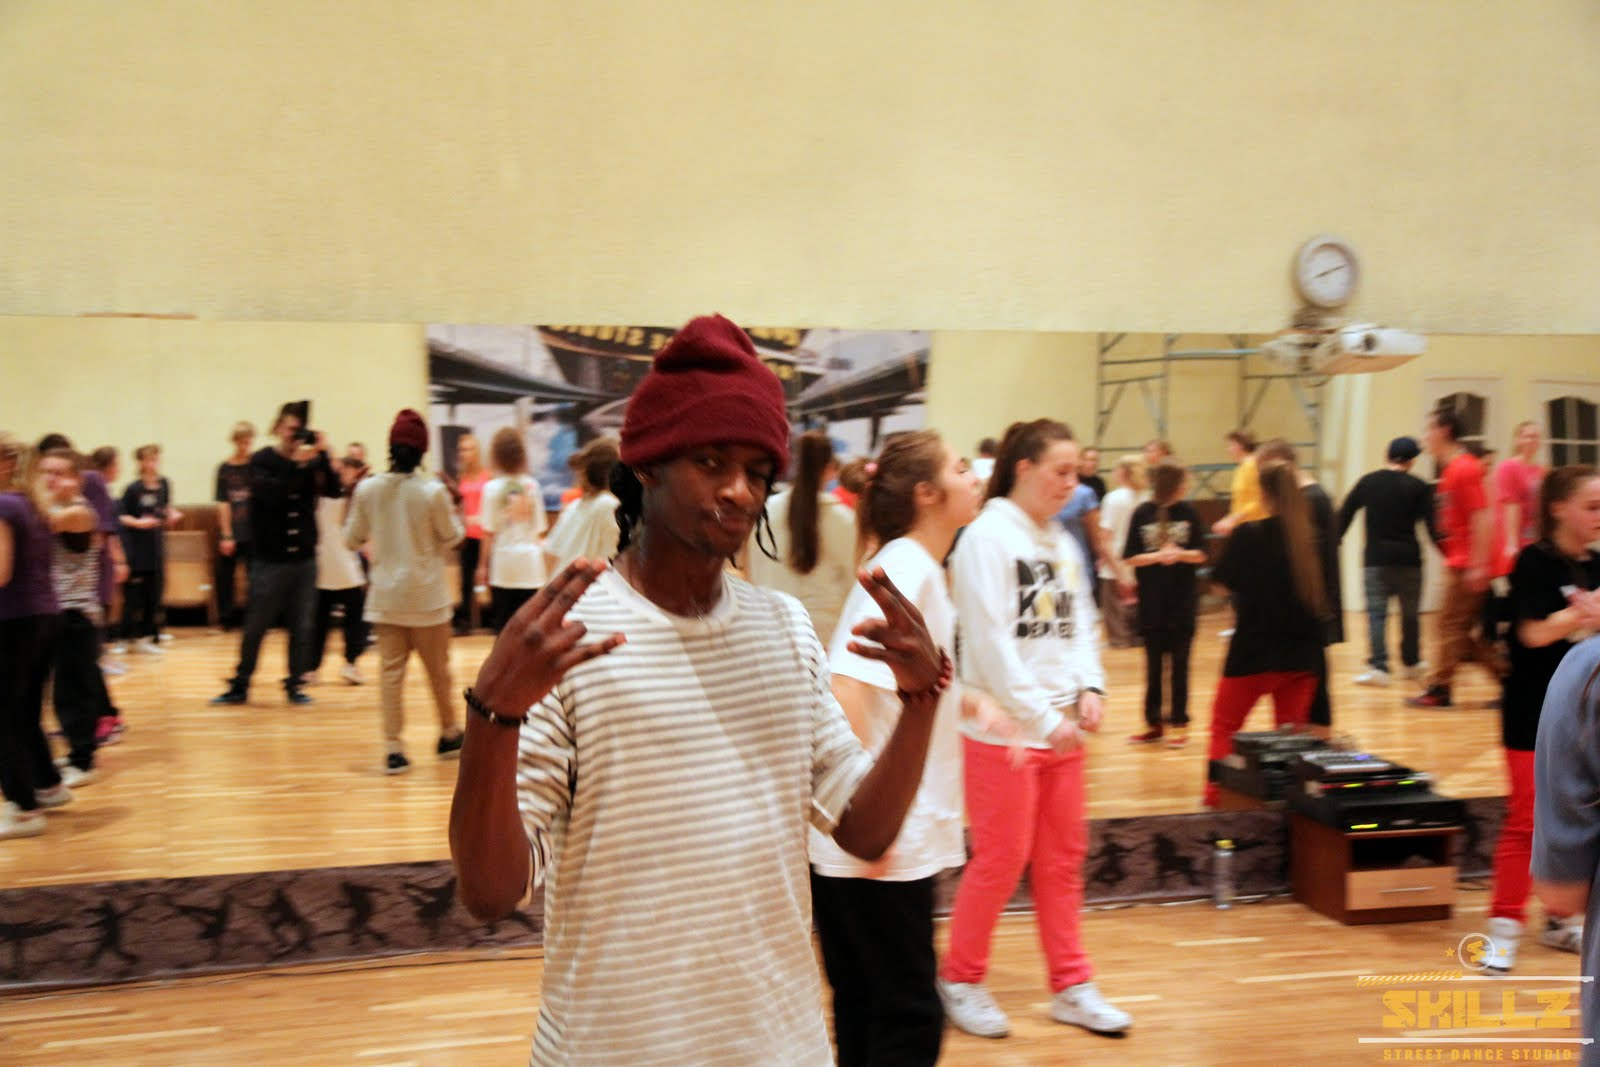 Hip- Hop workshop with Shaadow (UK) - IMG_1870.jpg